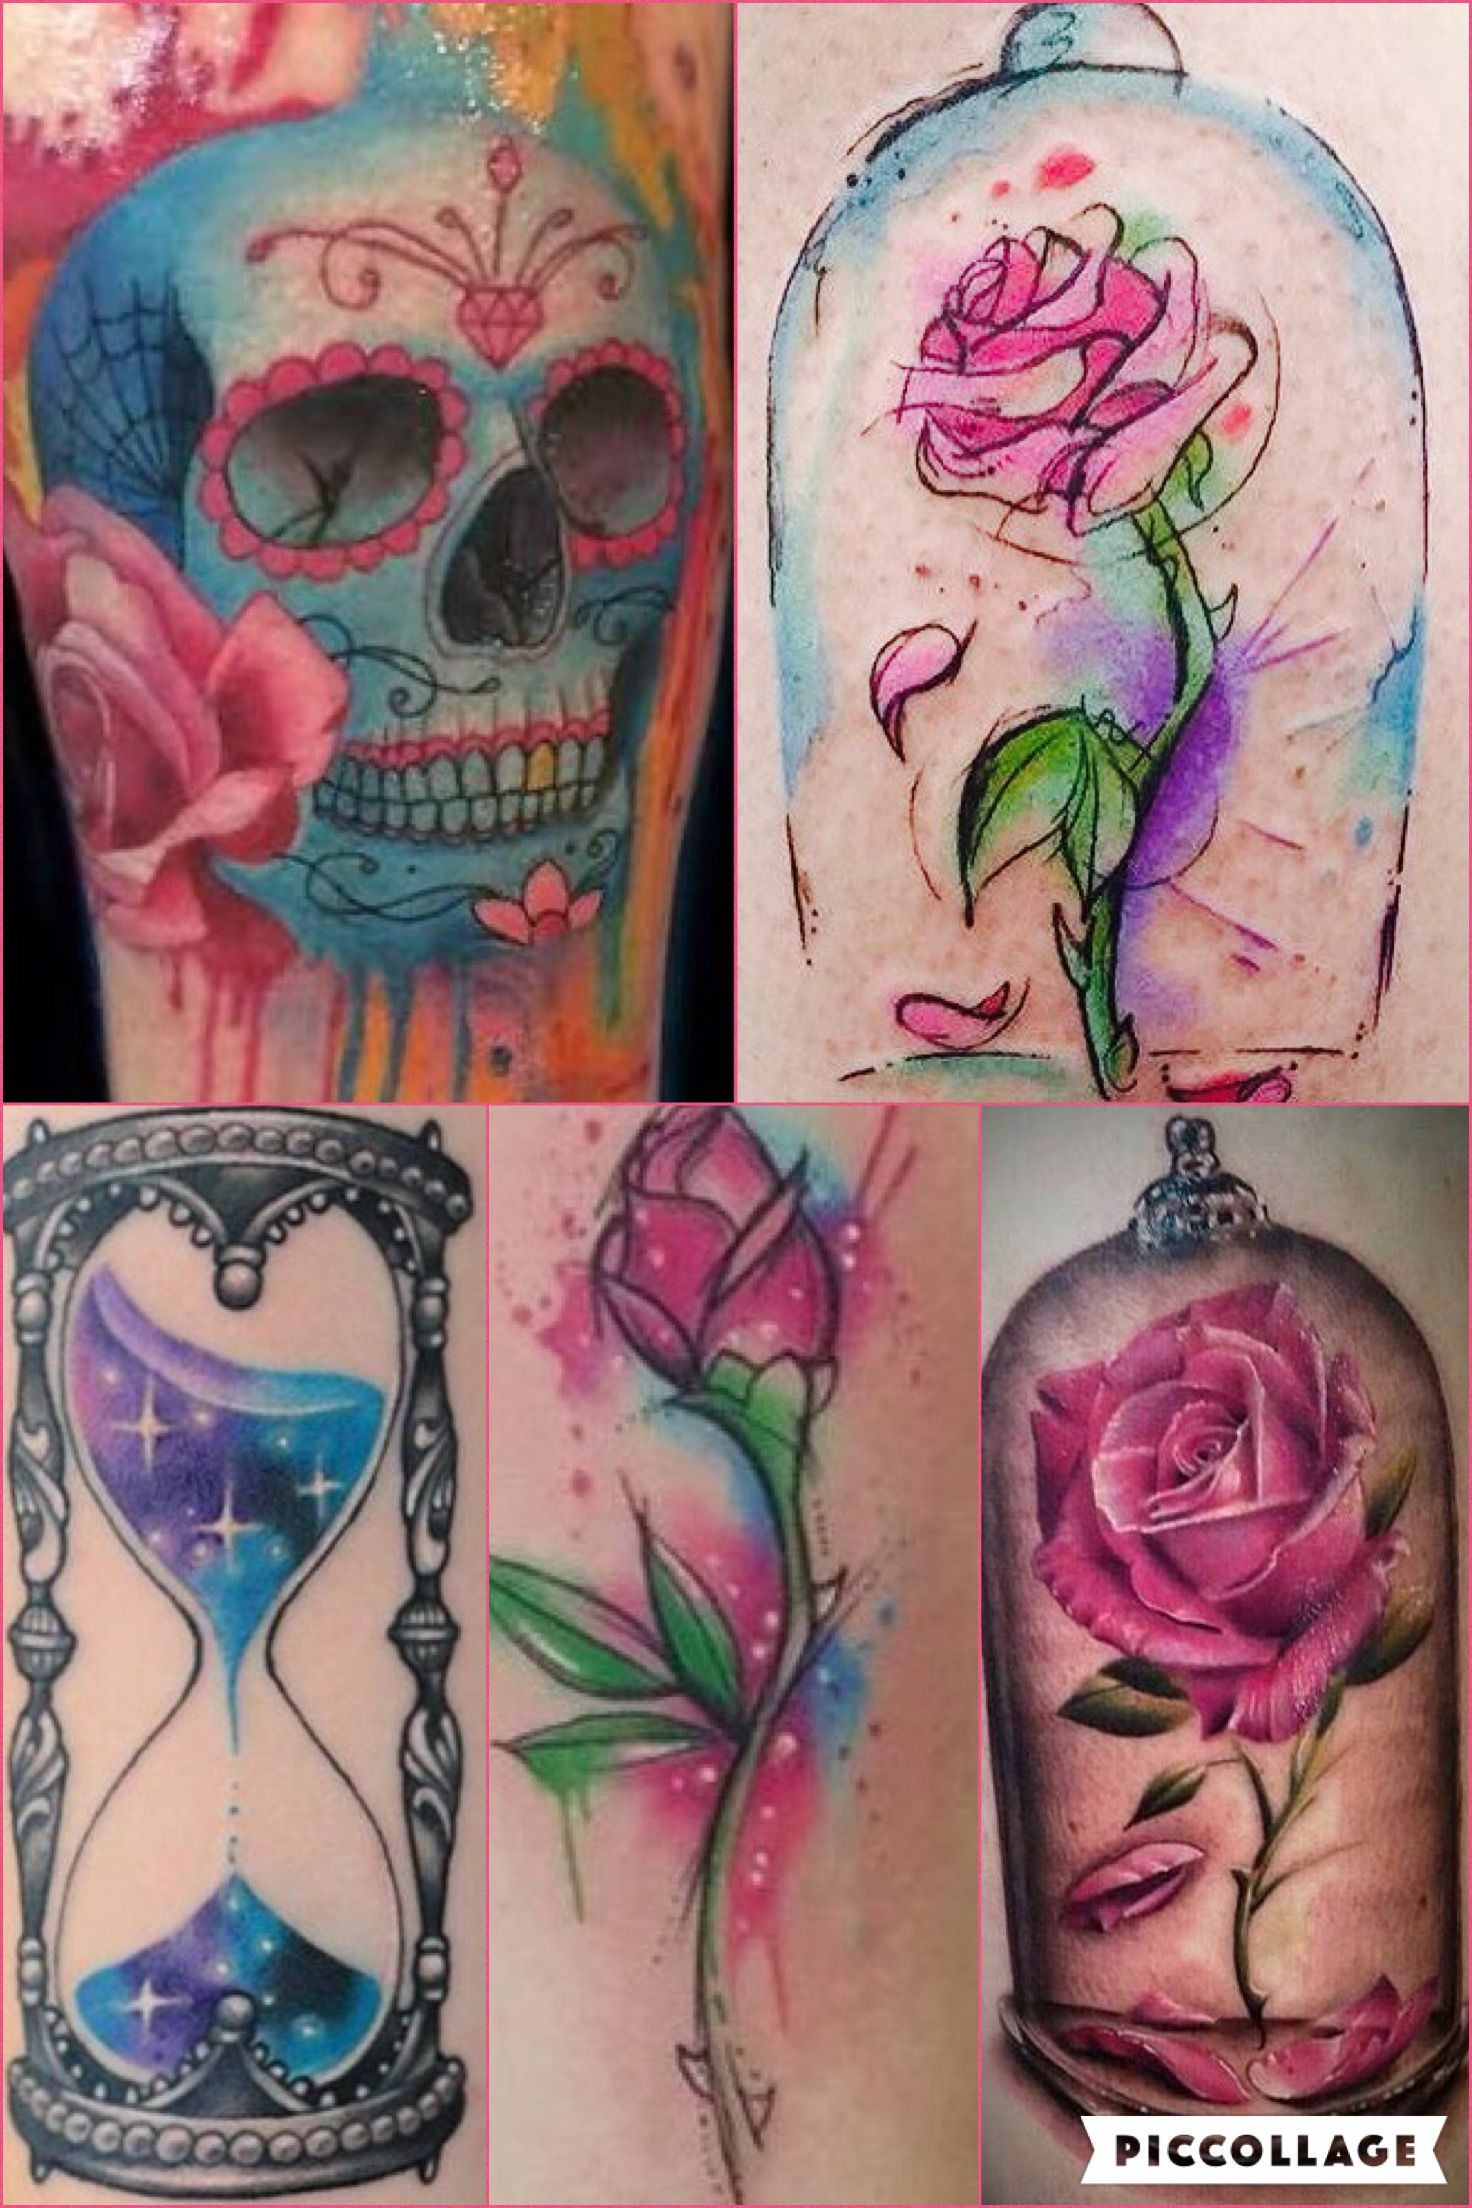 1000 images about tattos on pinterest beauty and the beast henna - Beauty And The Beast Rose Skulls N Roses And Hourglass Tattoo Ideas To Incorporate In